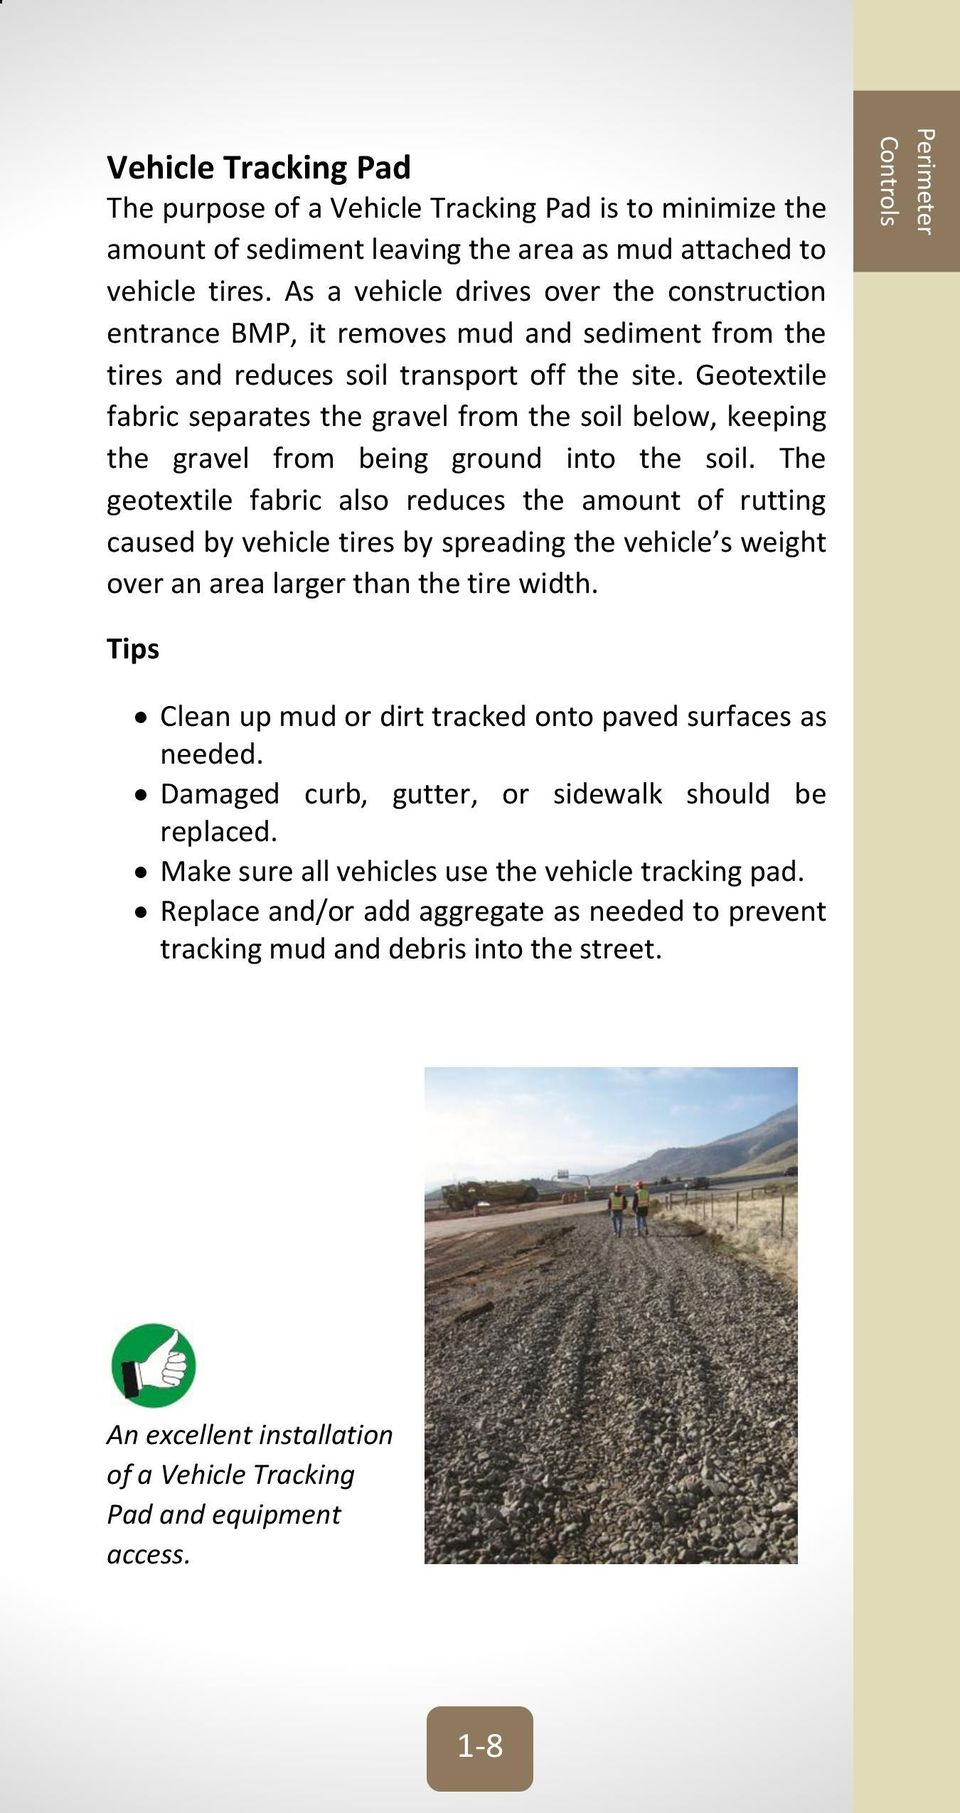 Geotextile fabric separates the gravel from the soil below, keeping the gravel from being ground into the soil.